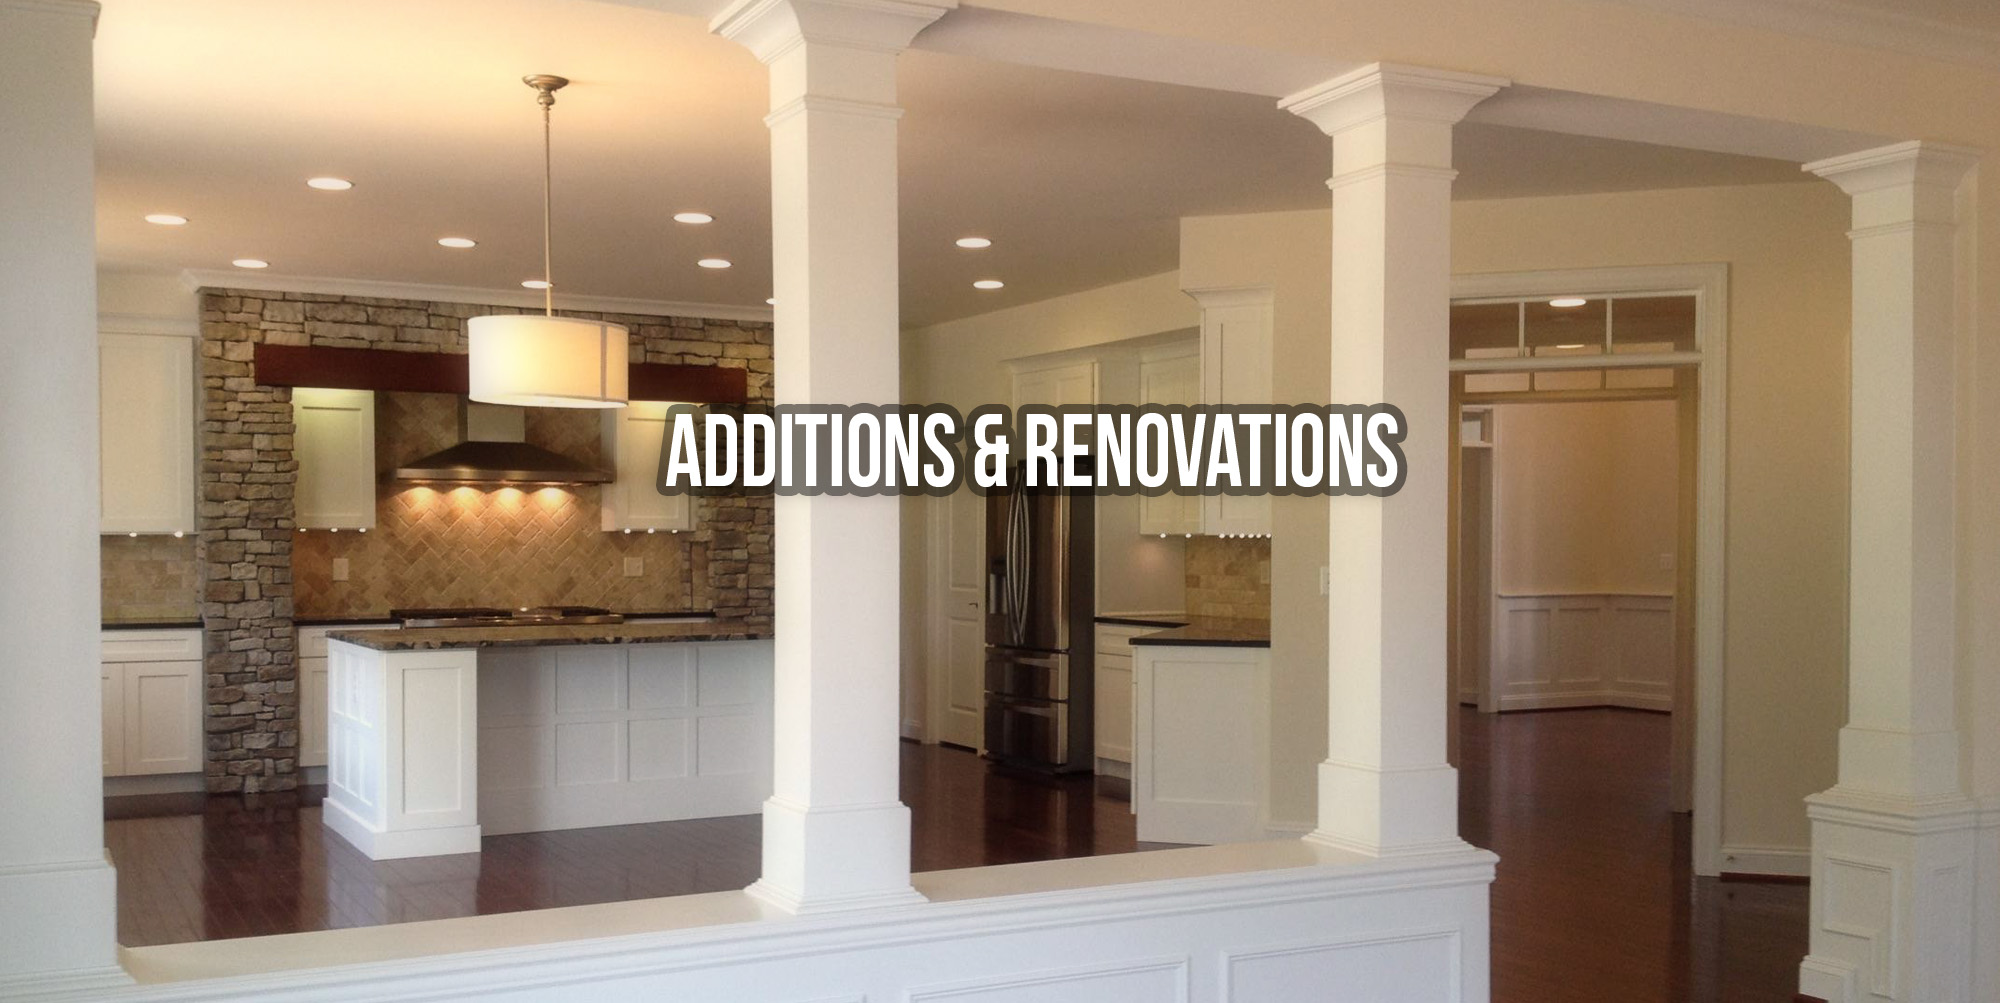 additions & renovations